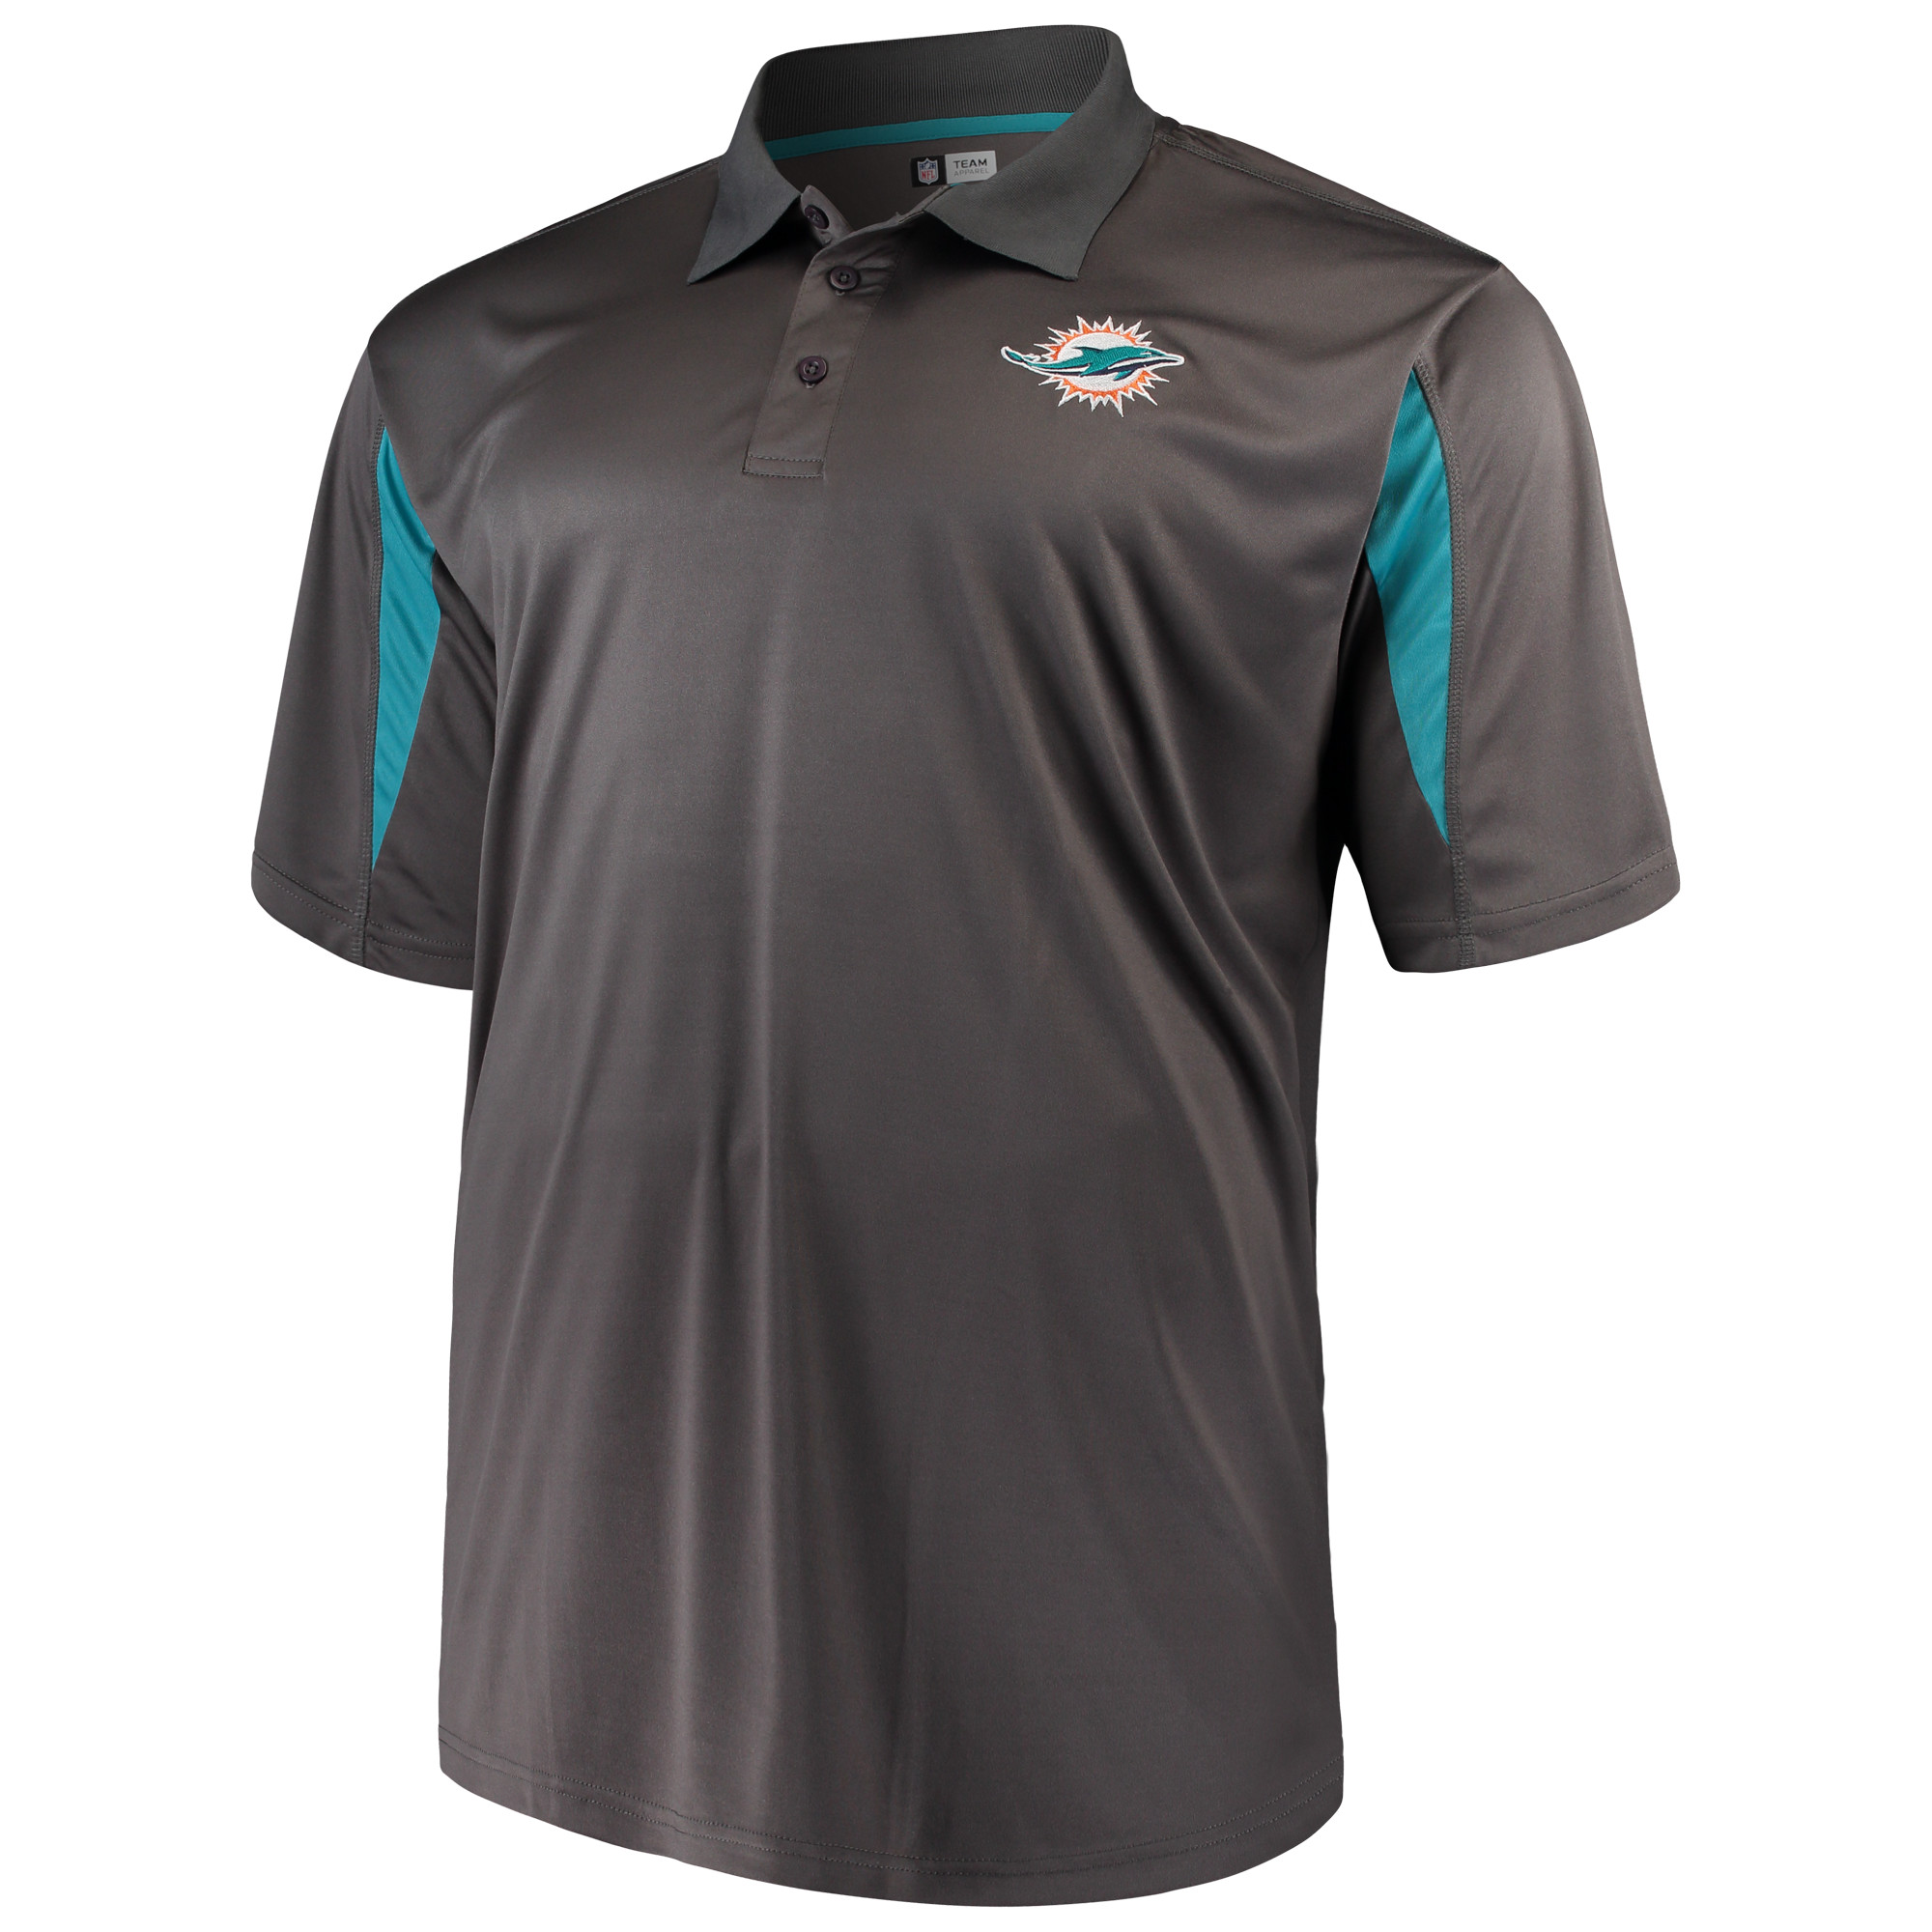 Men's Majestic Charcoal Miami Dolphins Big & Tall Pieced Polo